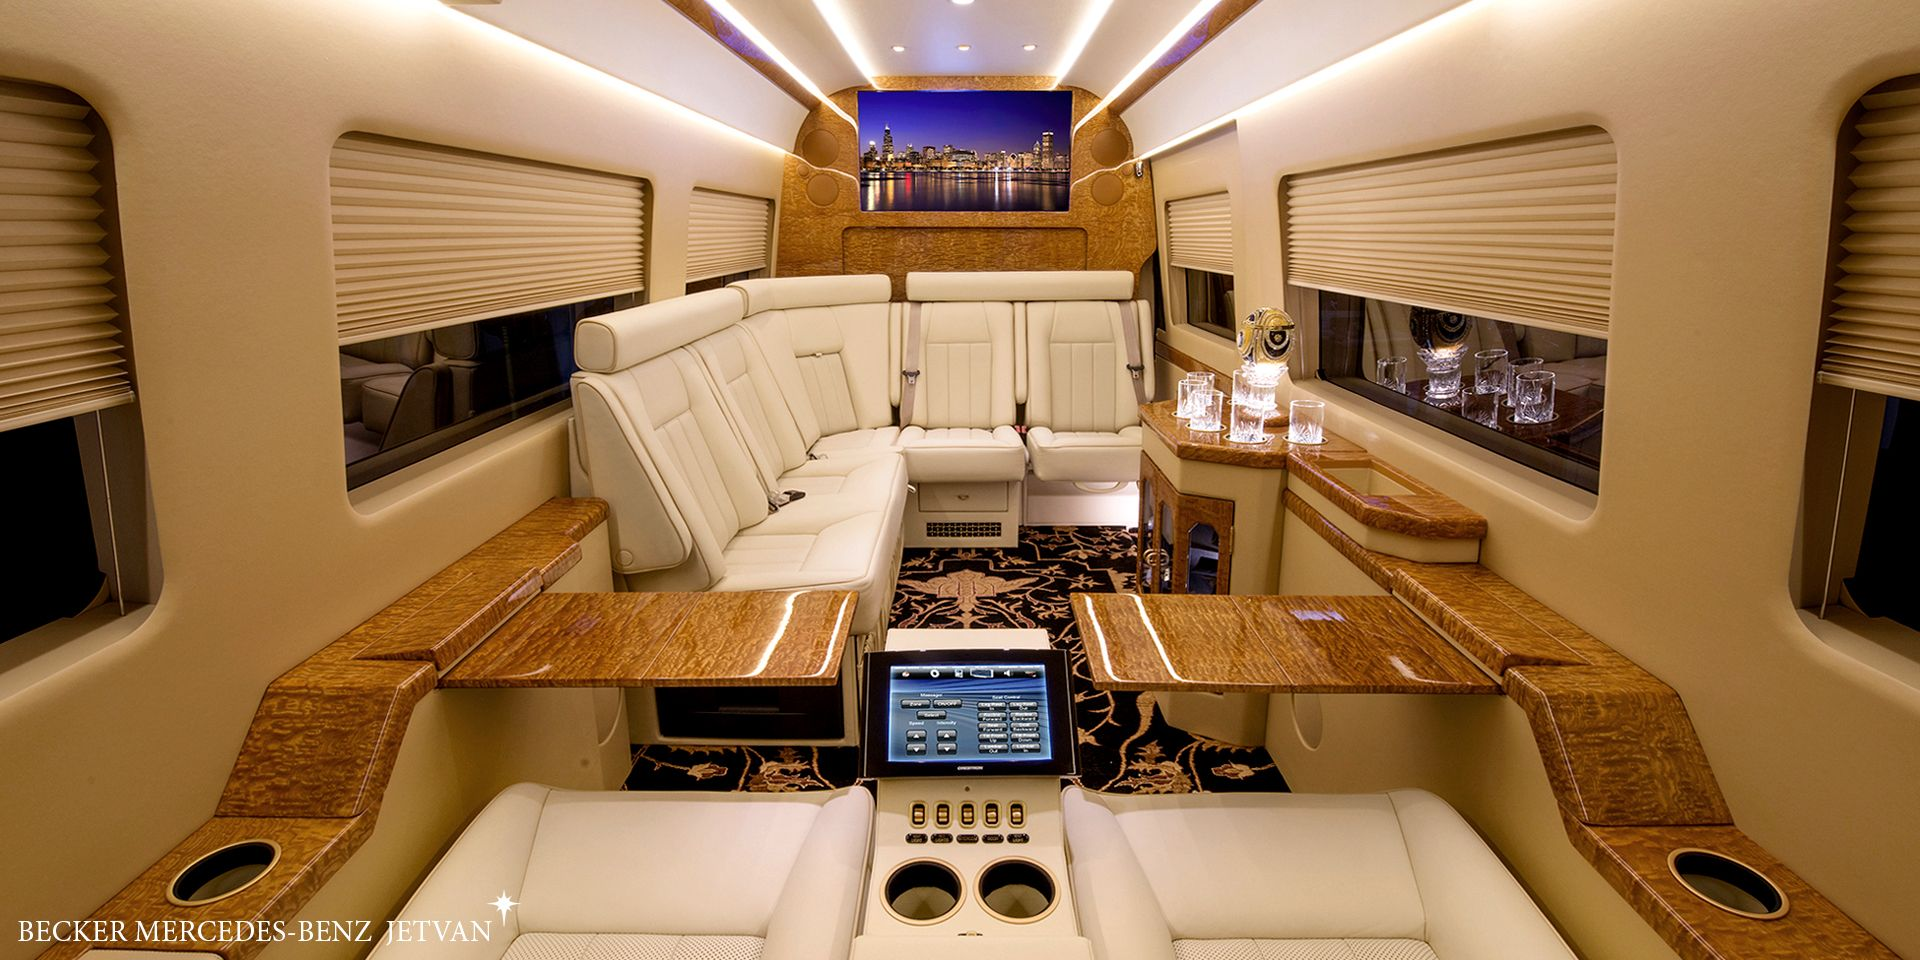 Sprinter Jetvan Luxury Bus Limousine Interior Bus Interior